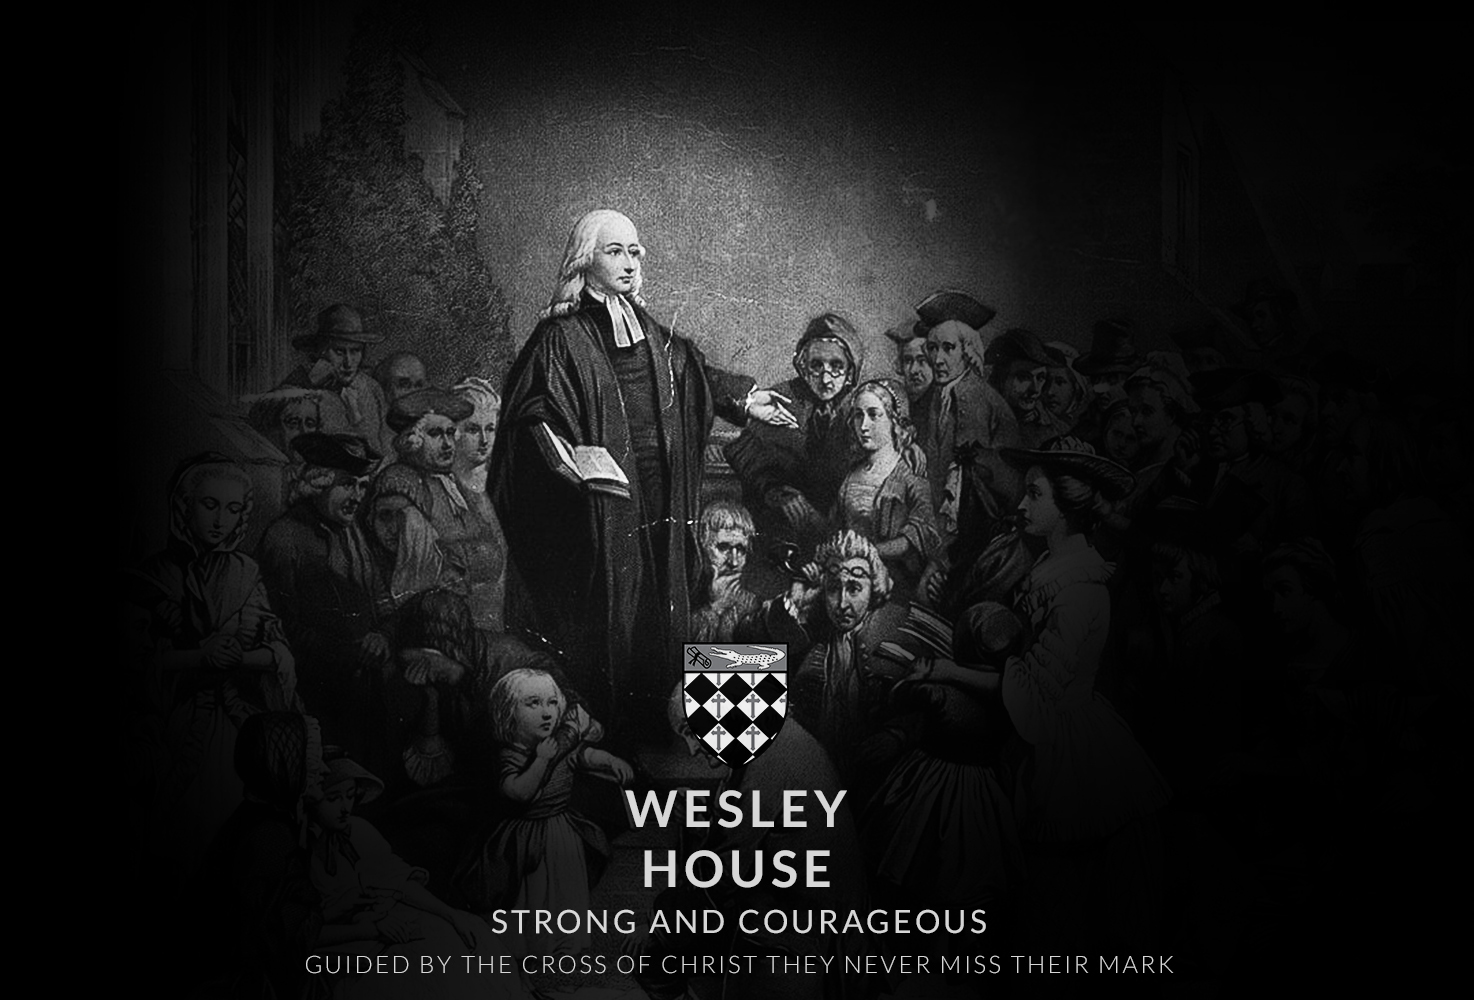 WesleyHouse_AW1_Reverse.jpg?mtime=20200820135011#asset:5495